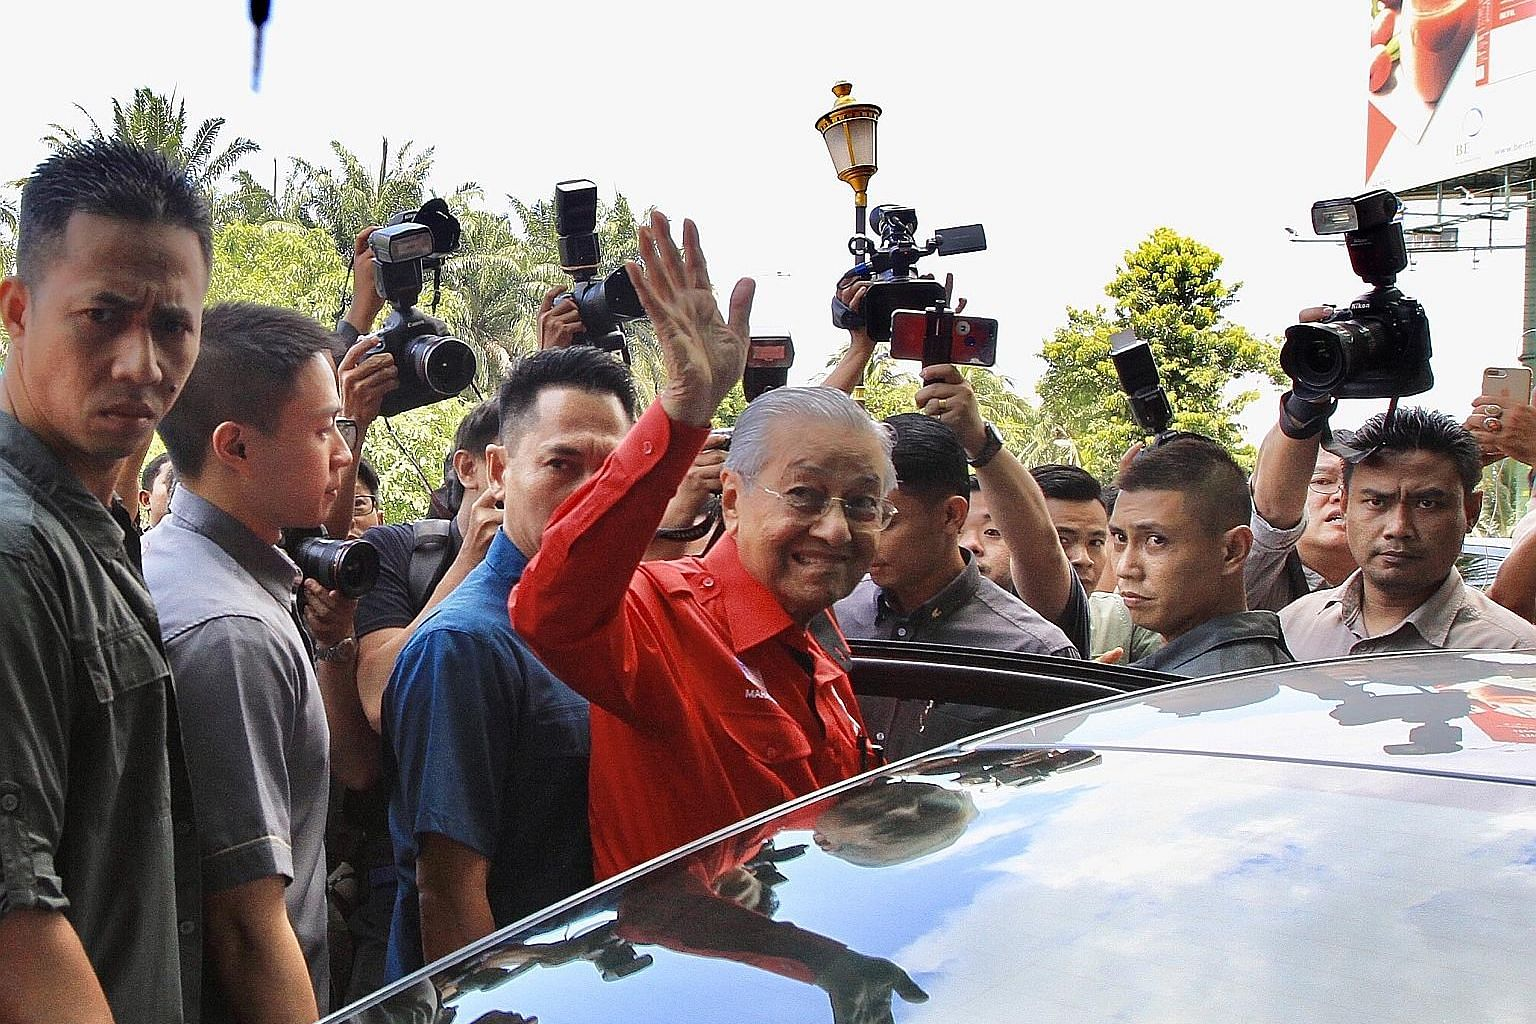 Malaysian Prime Minister Mahathir Mohamad leaving his party's headquarters yesterday in Petaling Jaya, Selangor, after a meeting. Speculation of the imminent collapse of the PH government peaked yesterday when local media reported that leaders from T